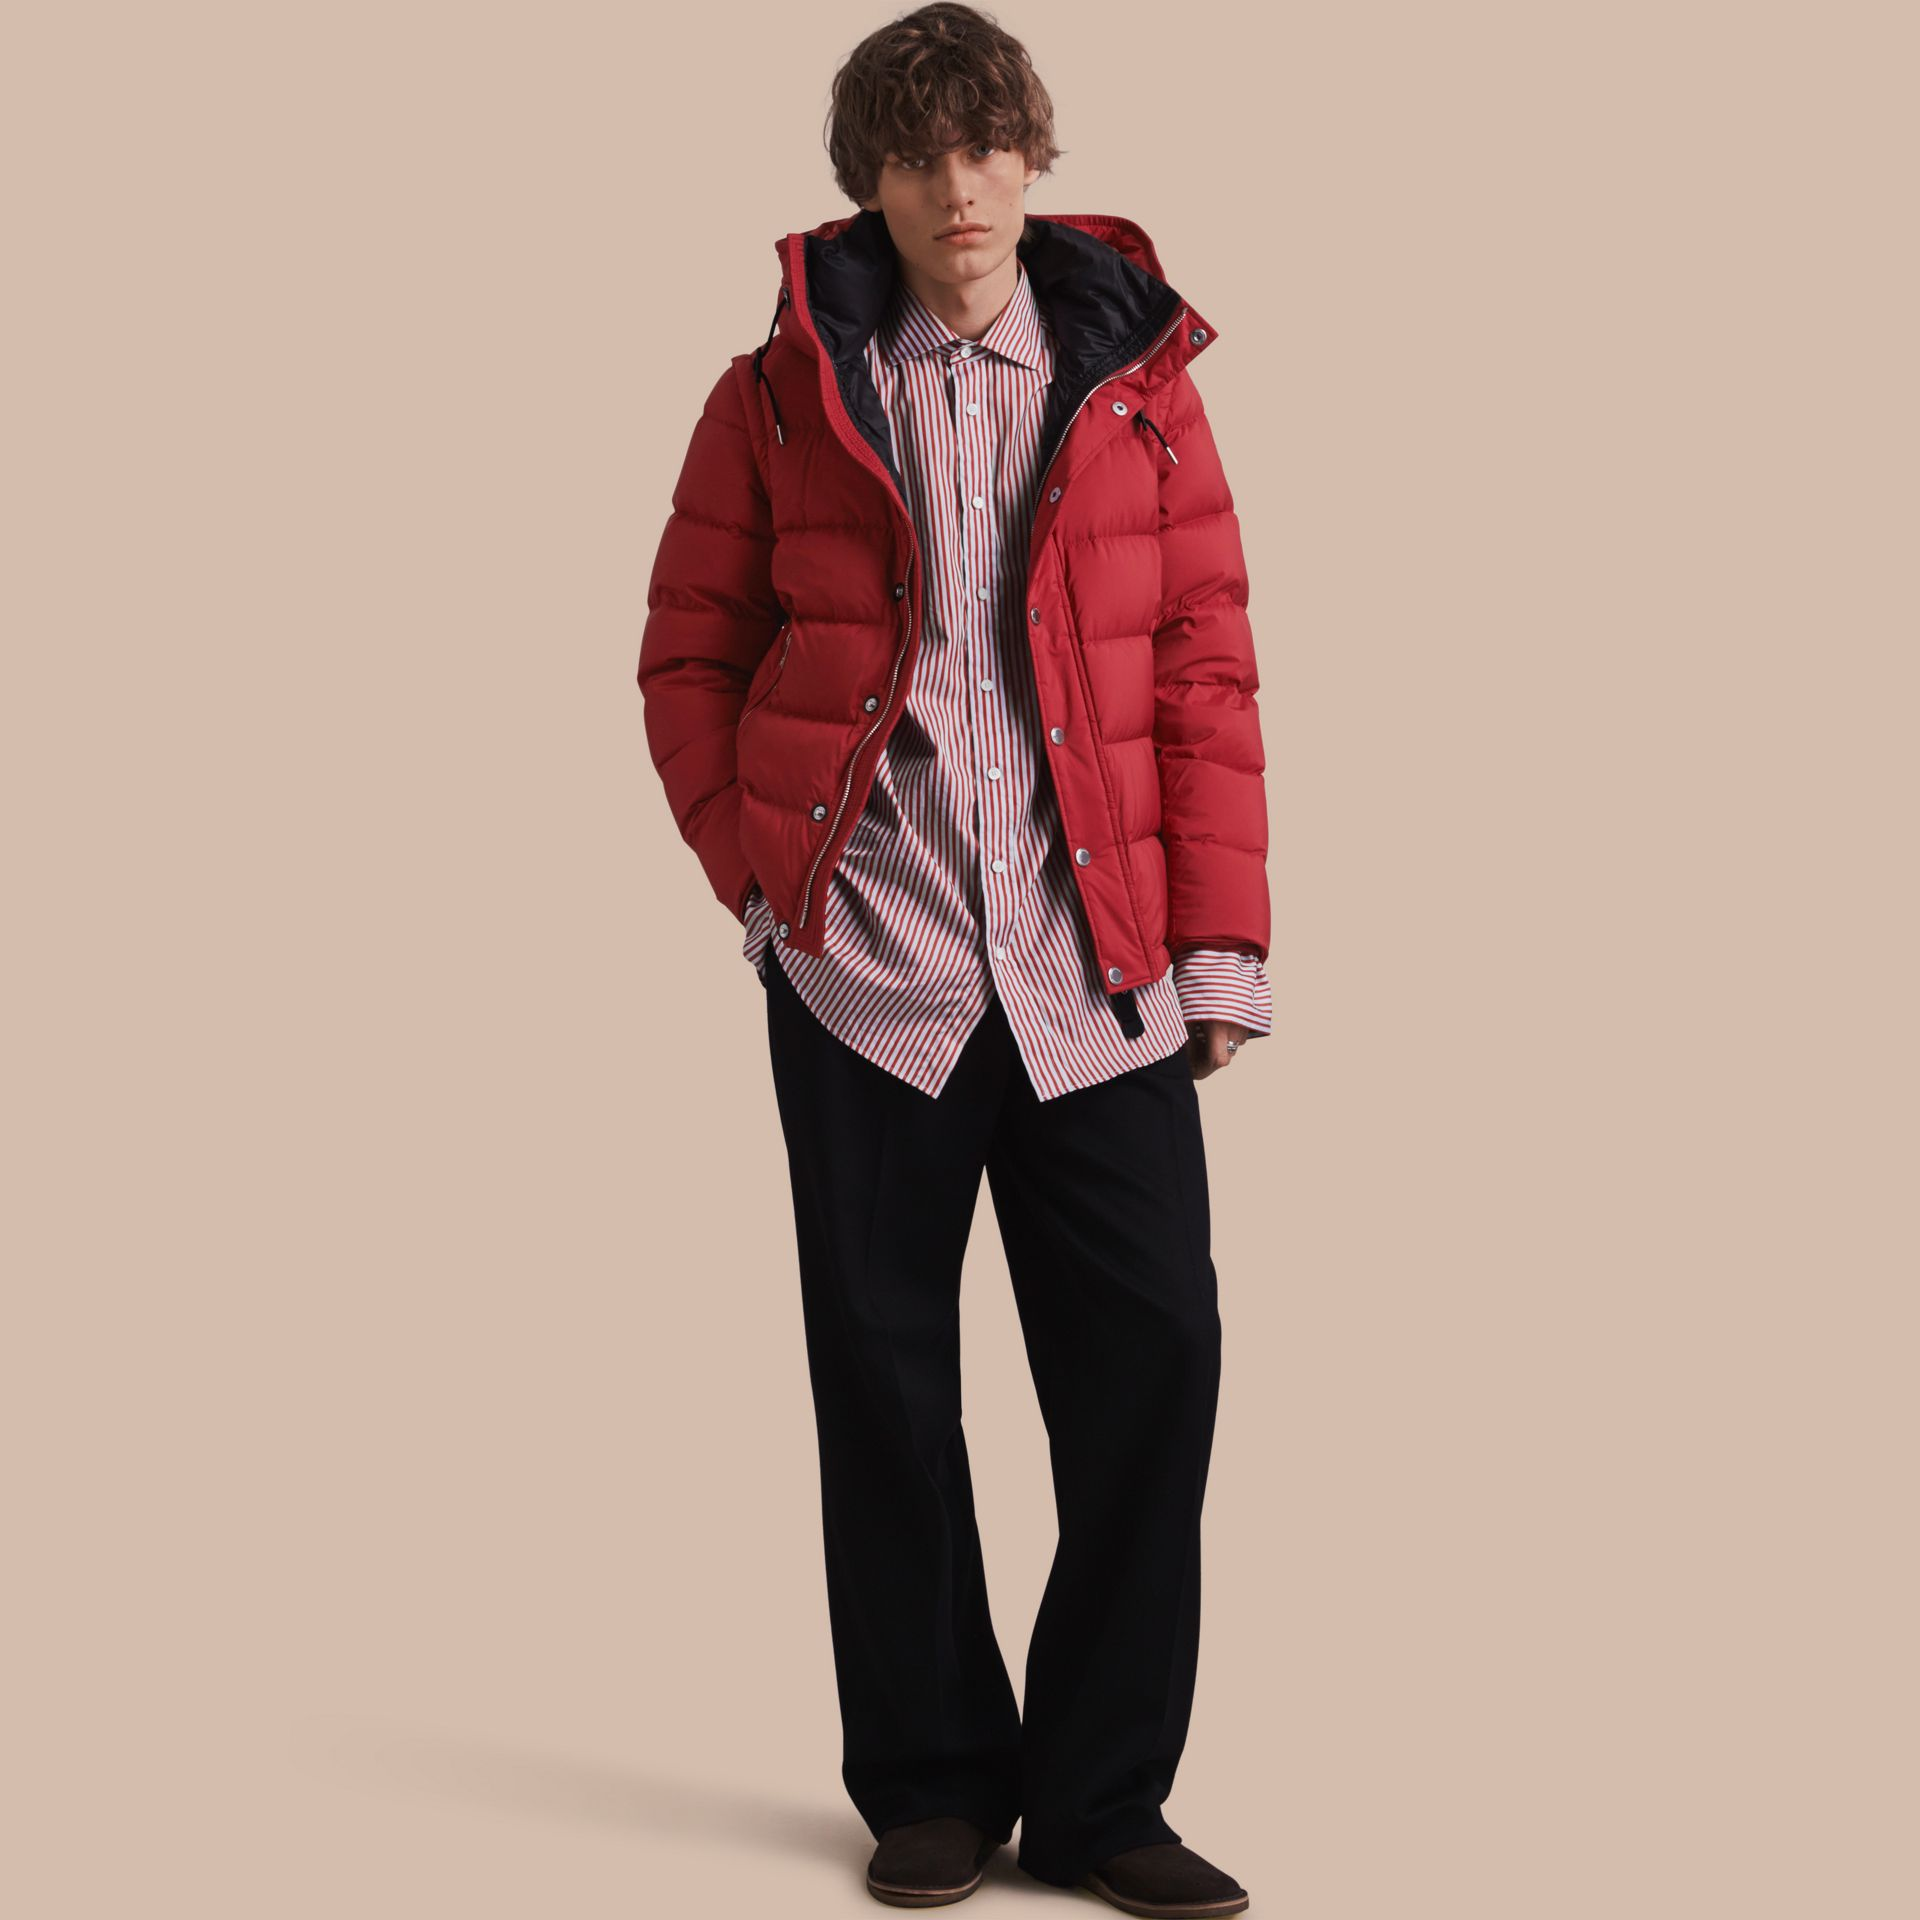 Down-filled Hooded Jacket with Detachable Sleeves in Parade Red - gallery image 1